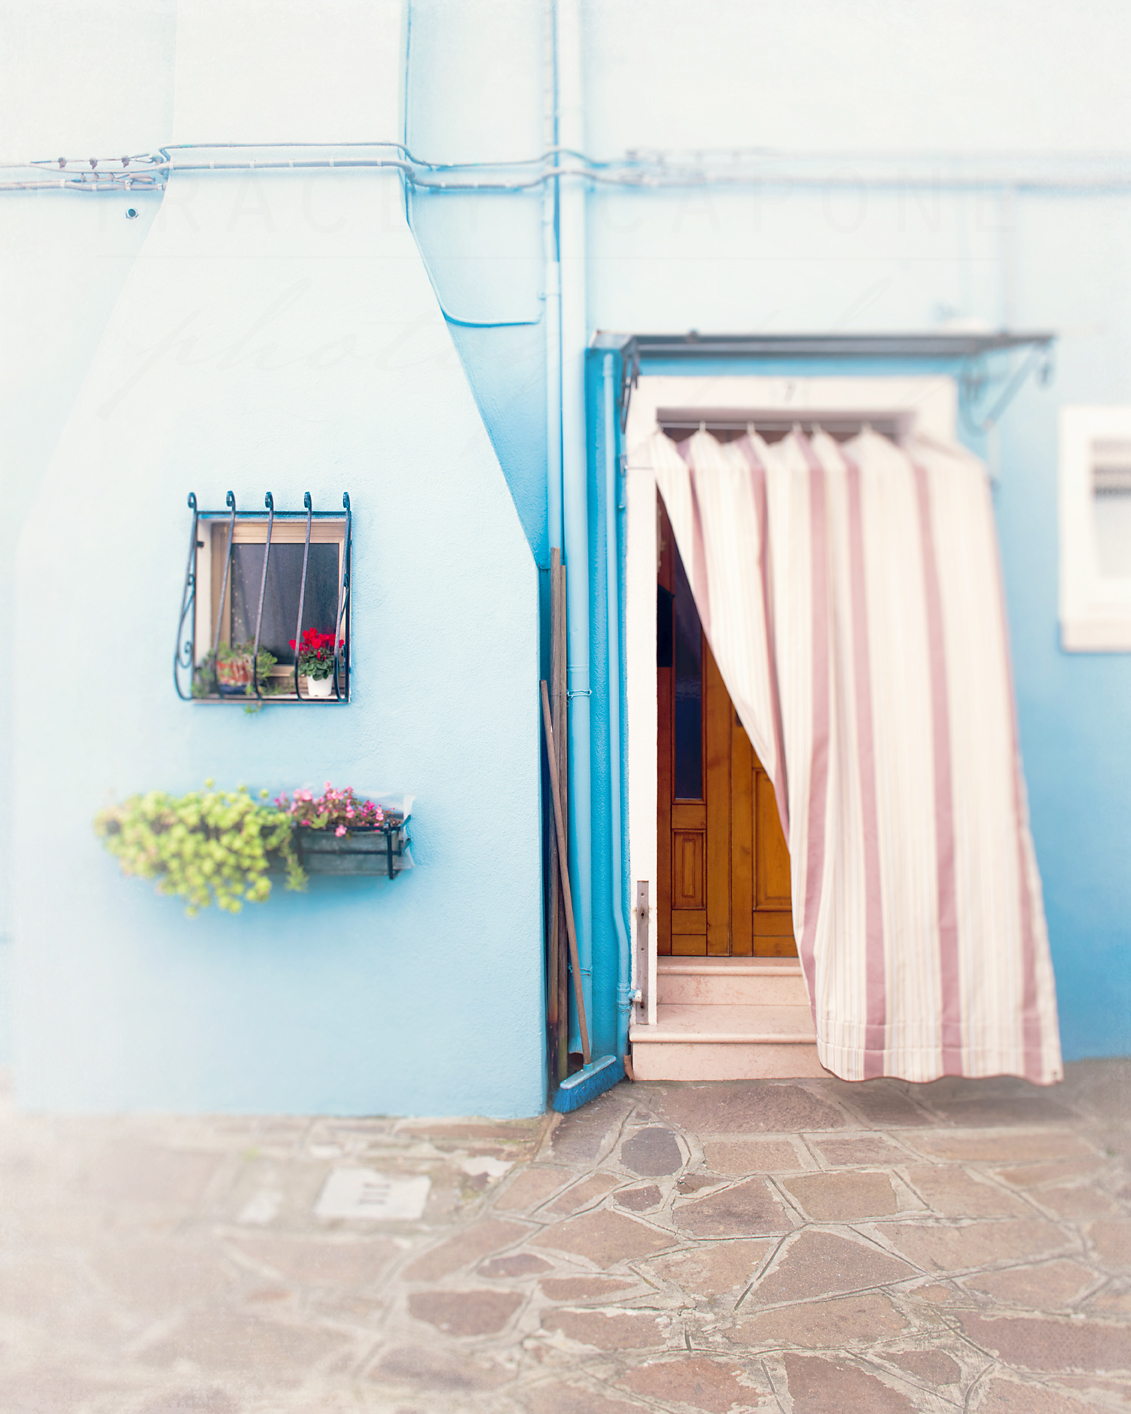 Photograph of a blue house with a pink and white curtain on the island of Burano, near Venice. Photograph by Chicago artist Tracey Capone.